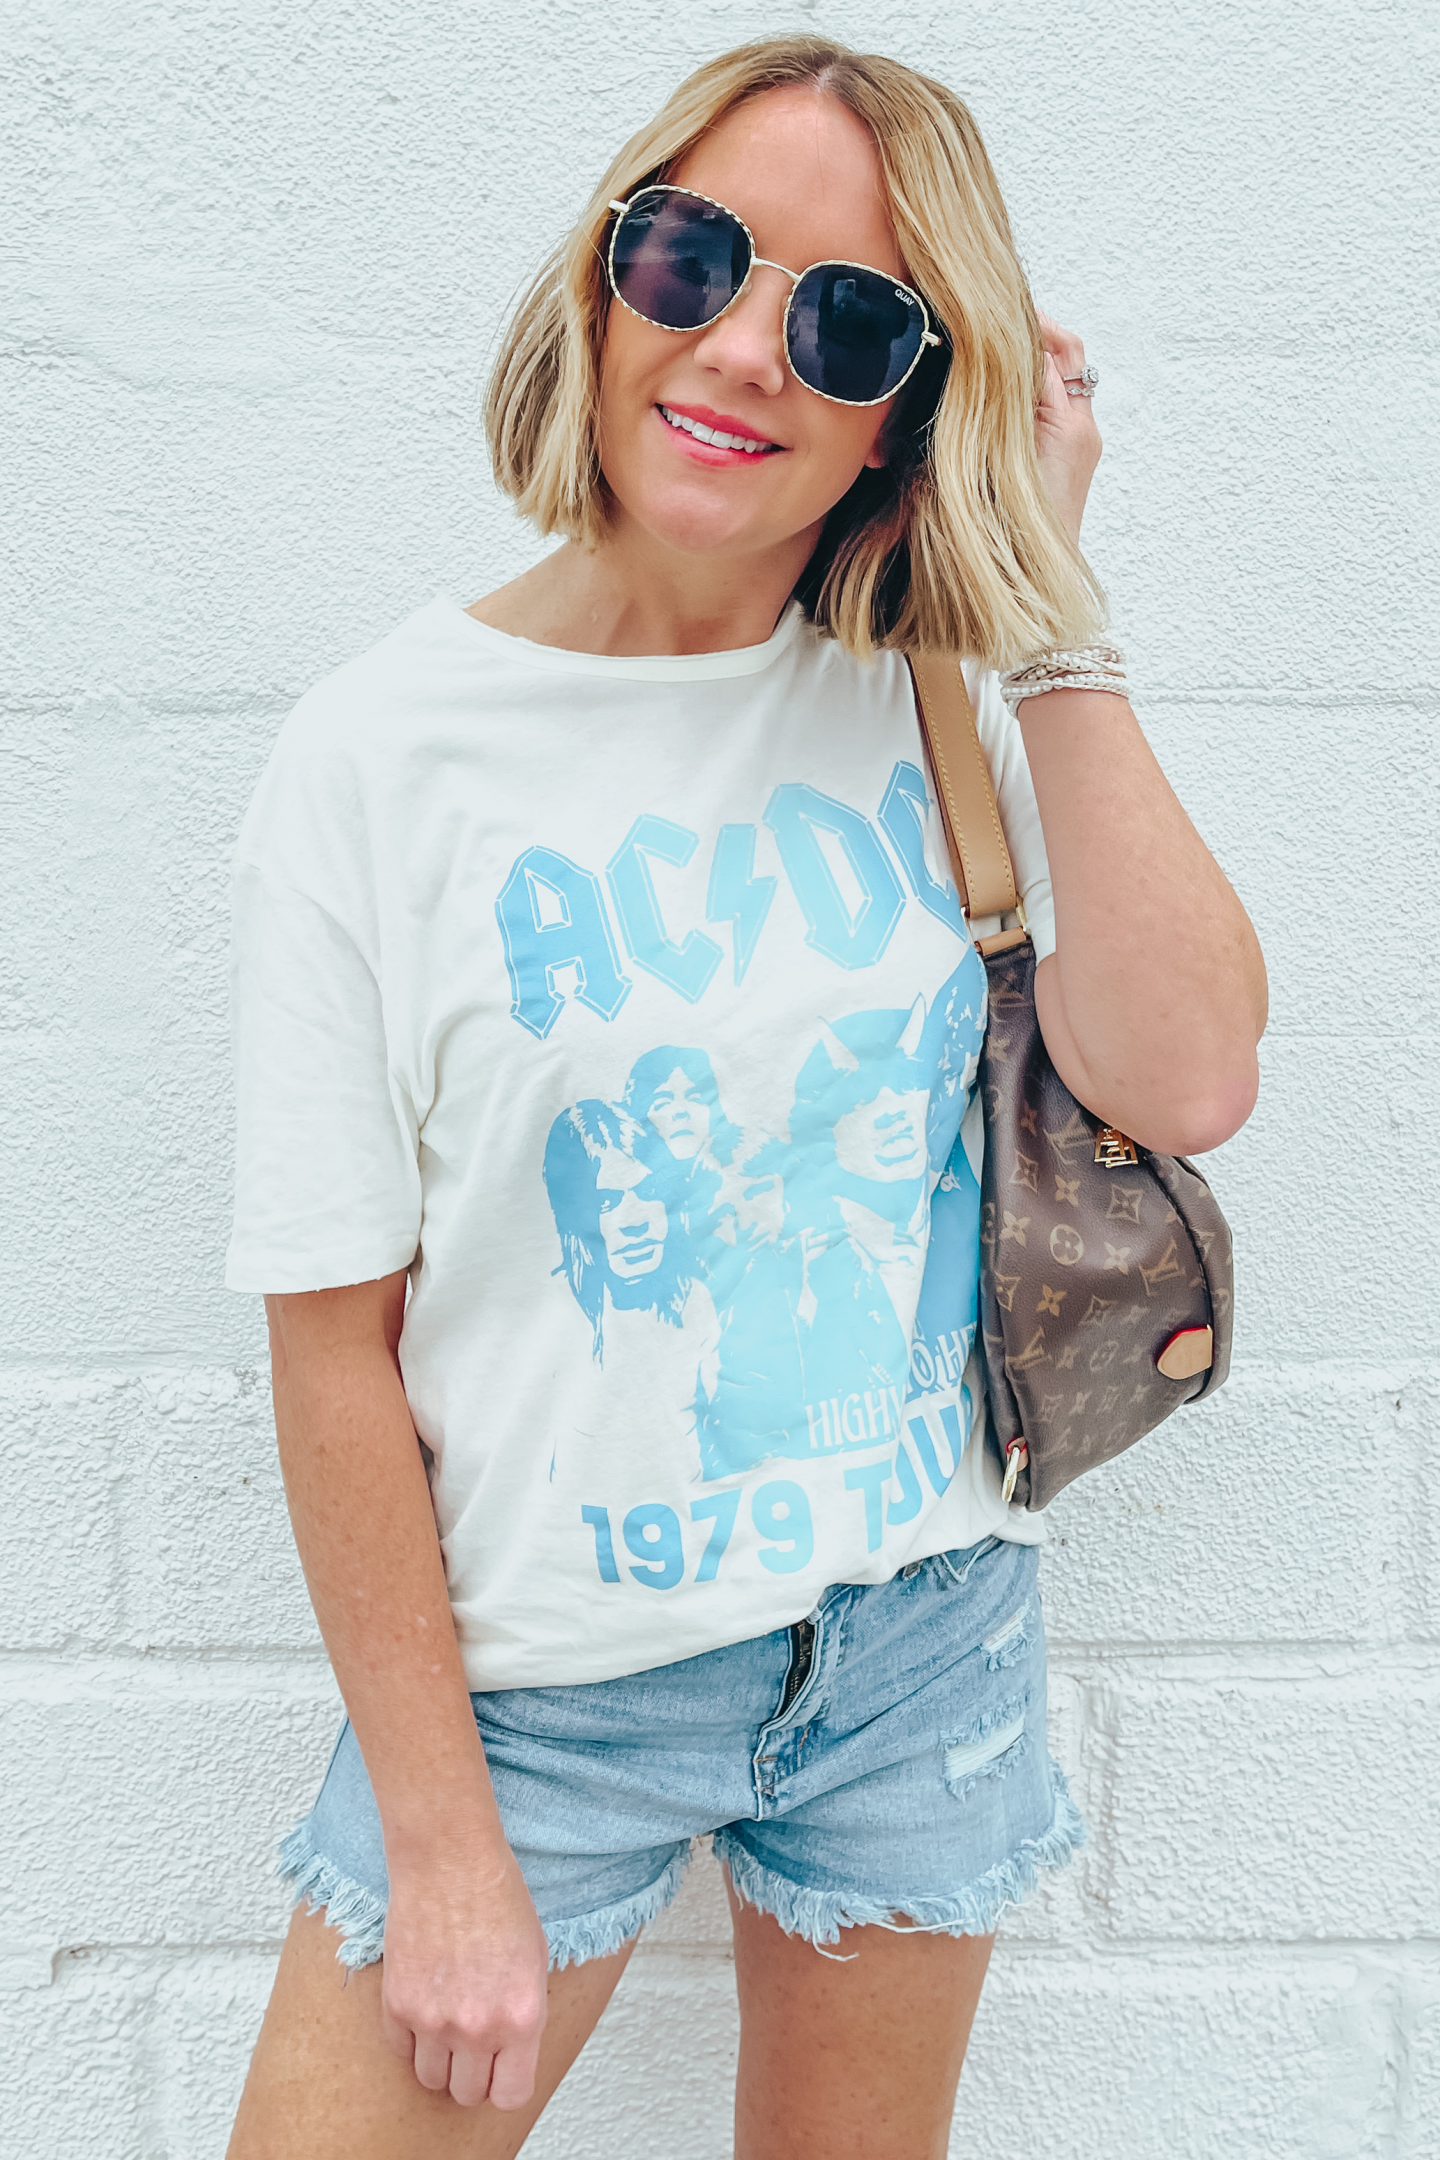 Five Ways to Style Denim Shorts, Scoop cutoff shorts, AC/DC graphic tee